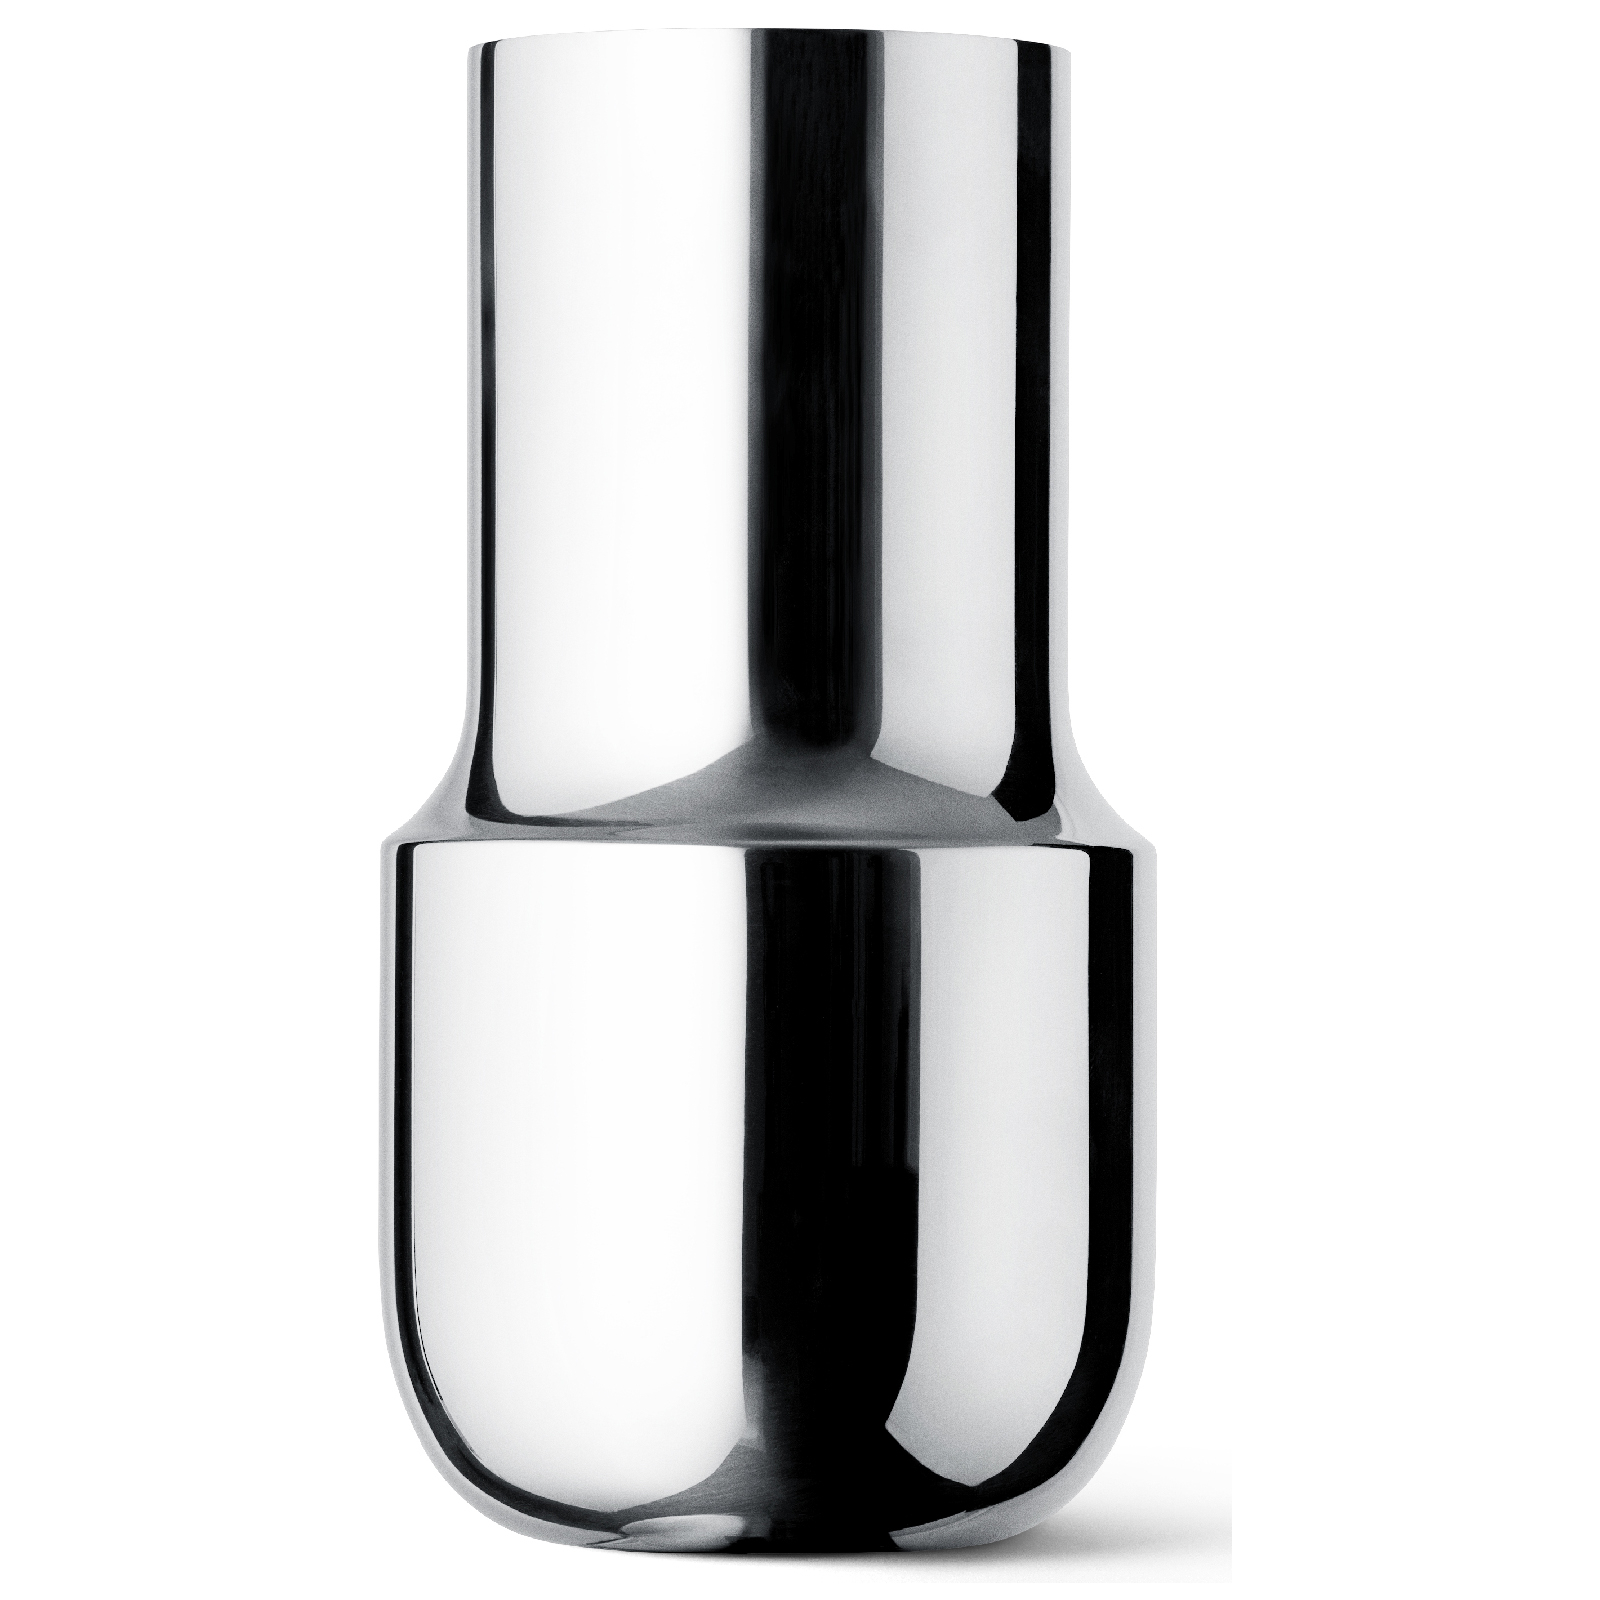 Menu Tactile Tall Vase - Stainless Steel